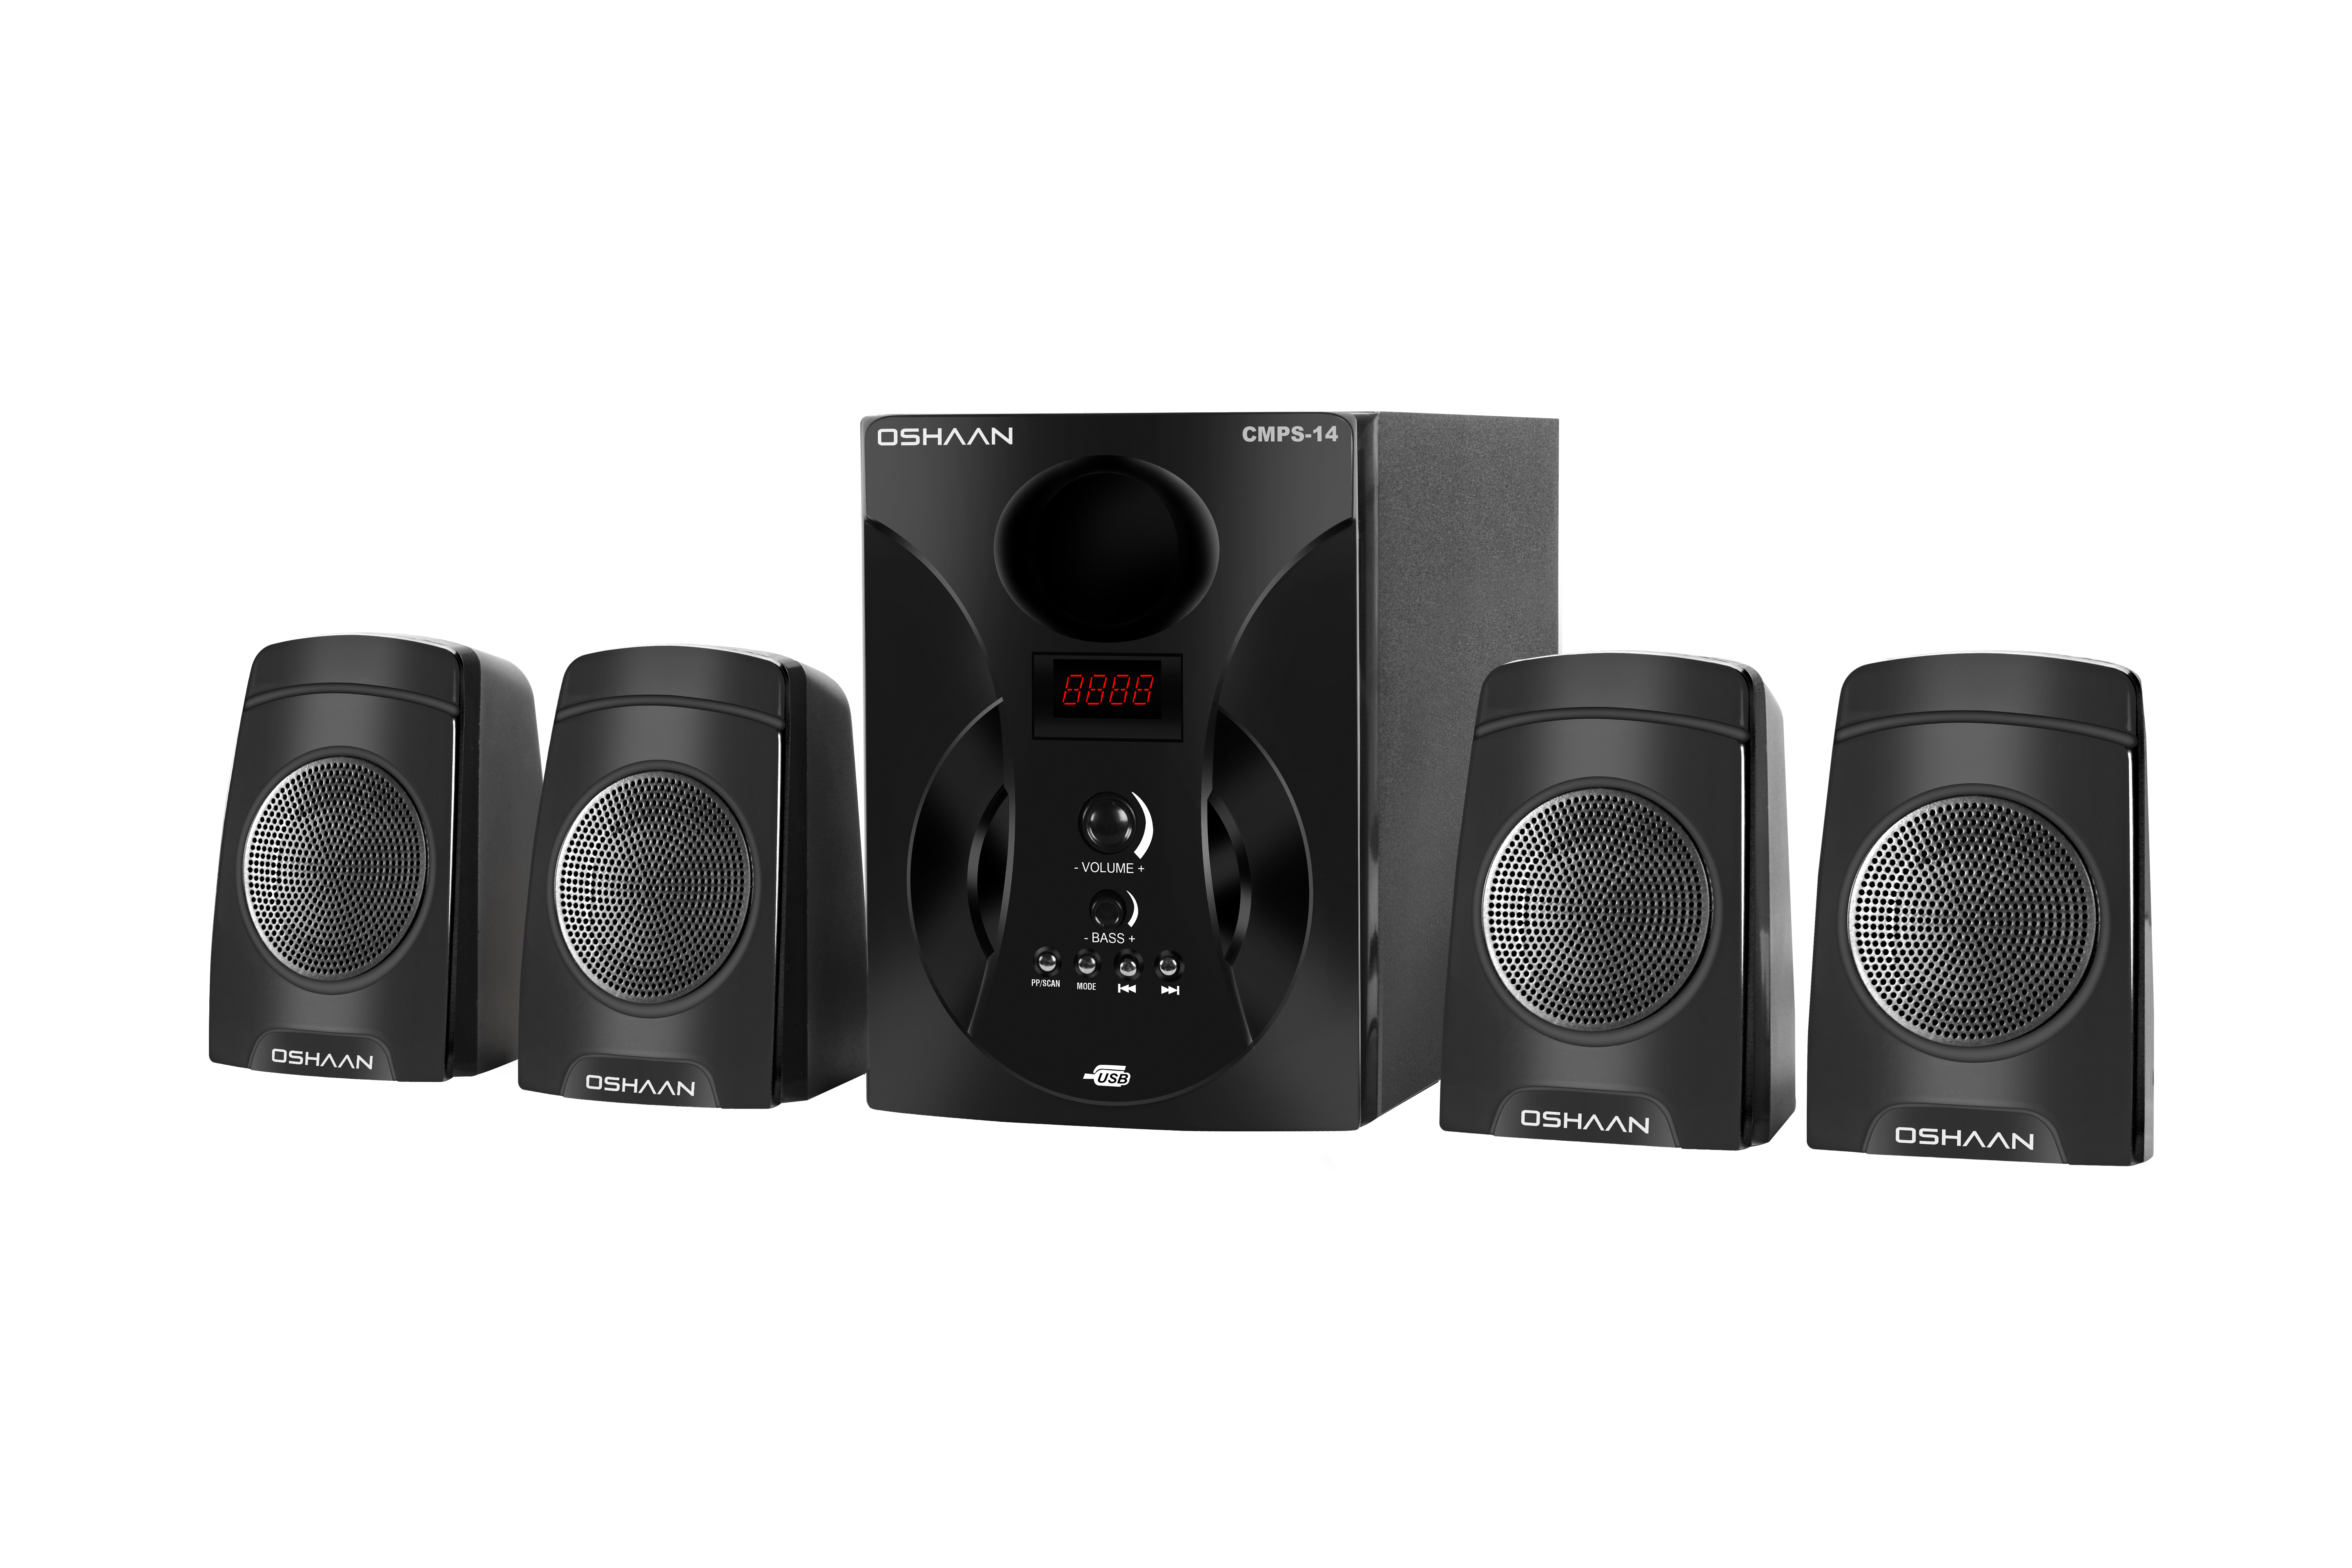 Oshaan S14 4.1 Multimedia Home Theater Speaker with Bluetooth